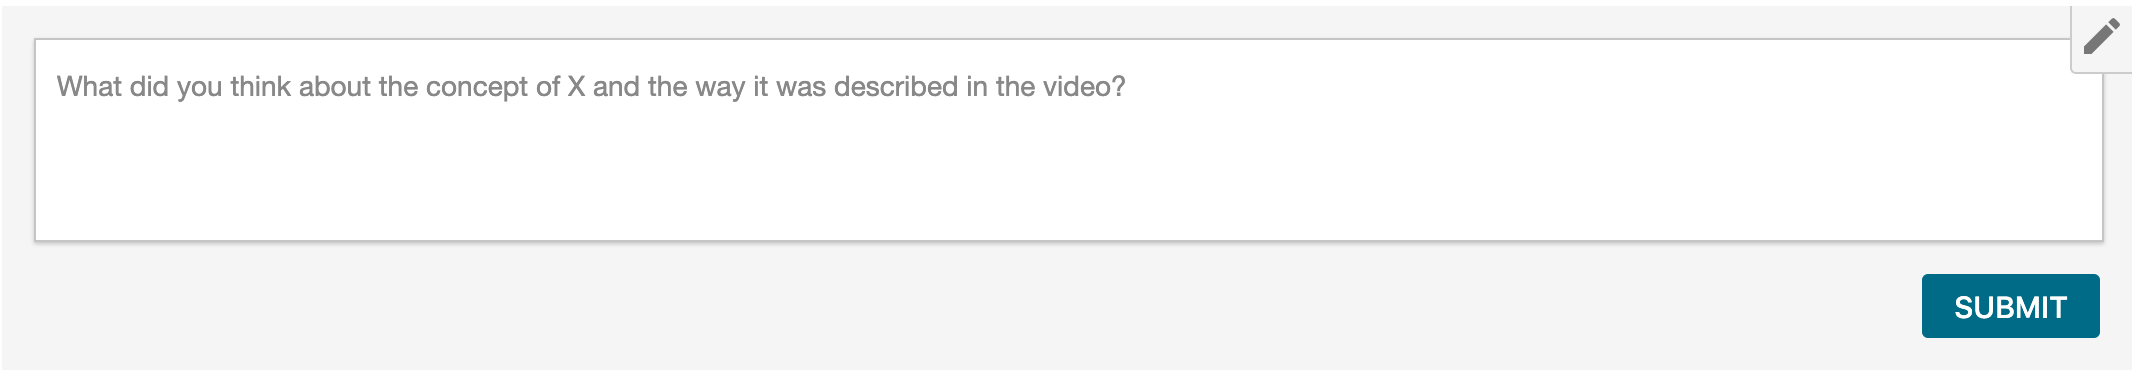 "An example of a Comments Box embedded into a page in Canvas with the prompt question ""what did you think about the concept of X and the way it was described in the video?"""